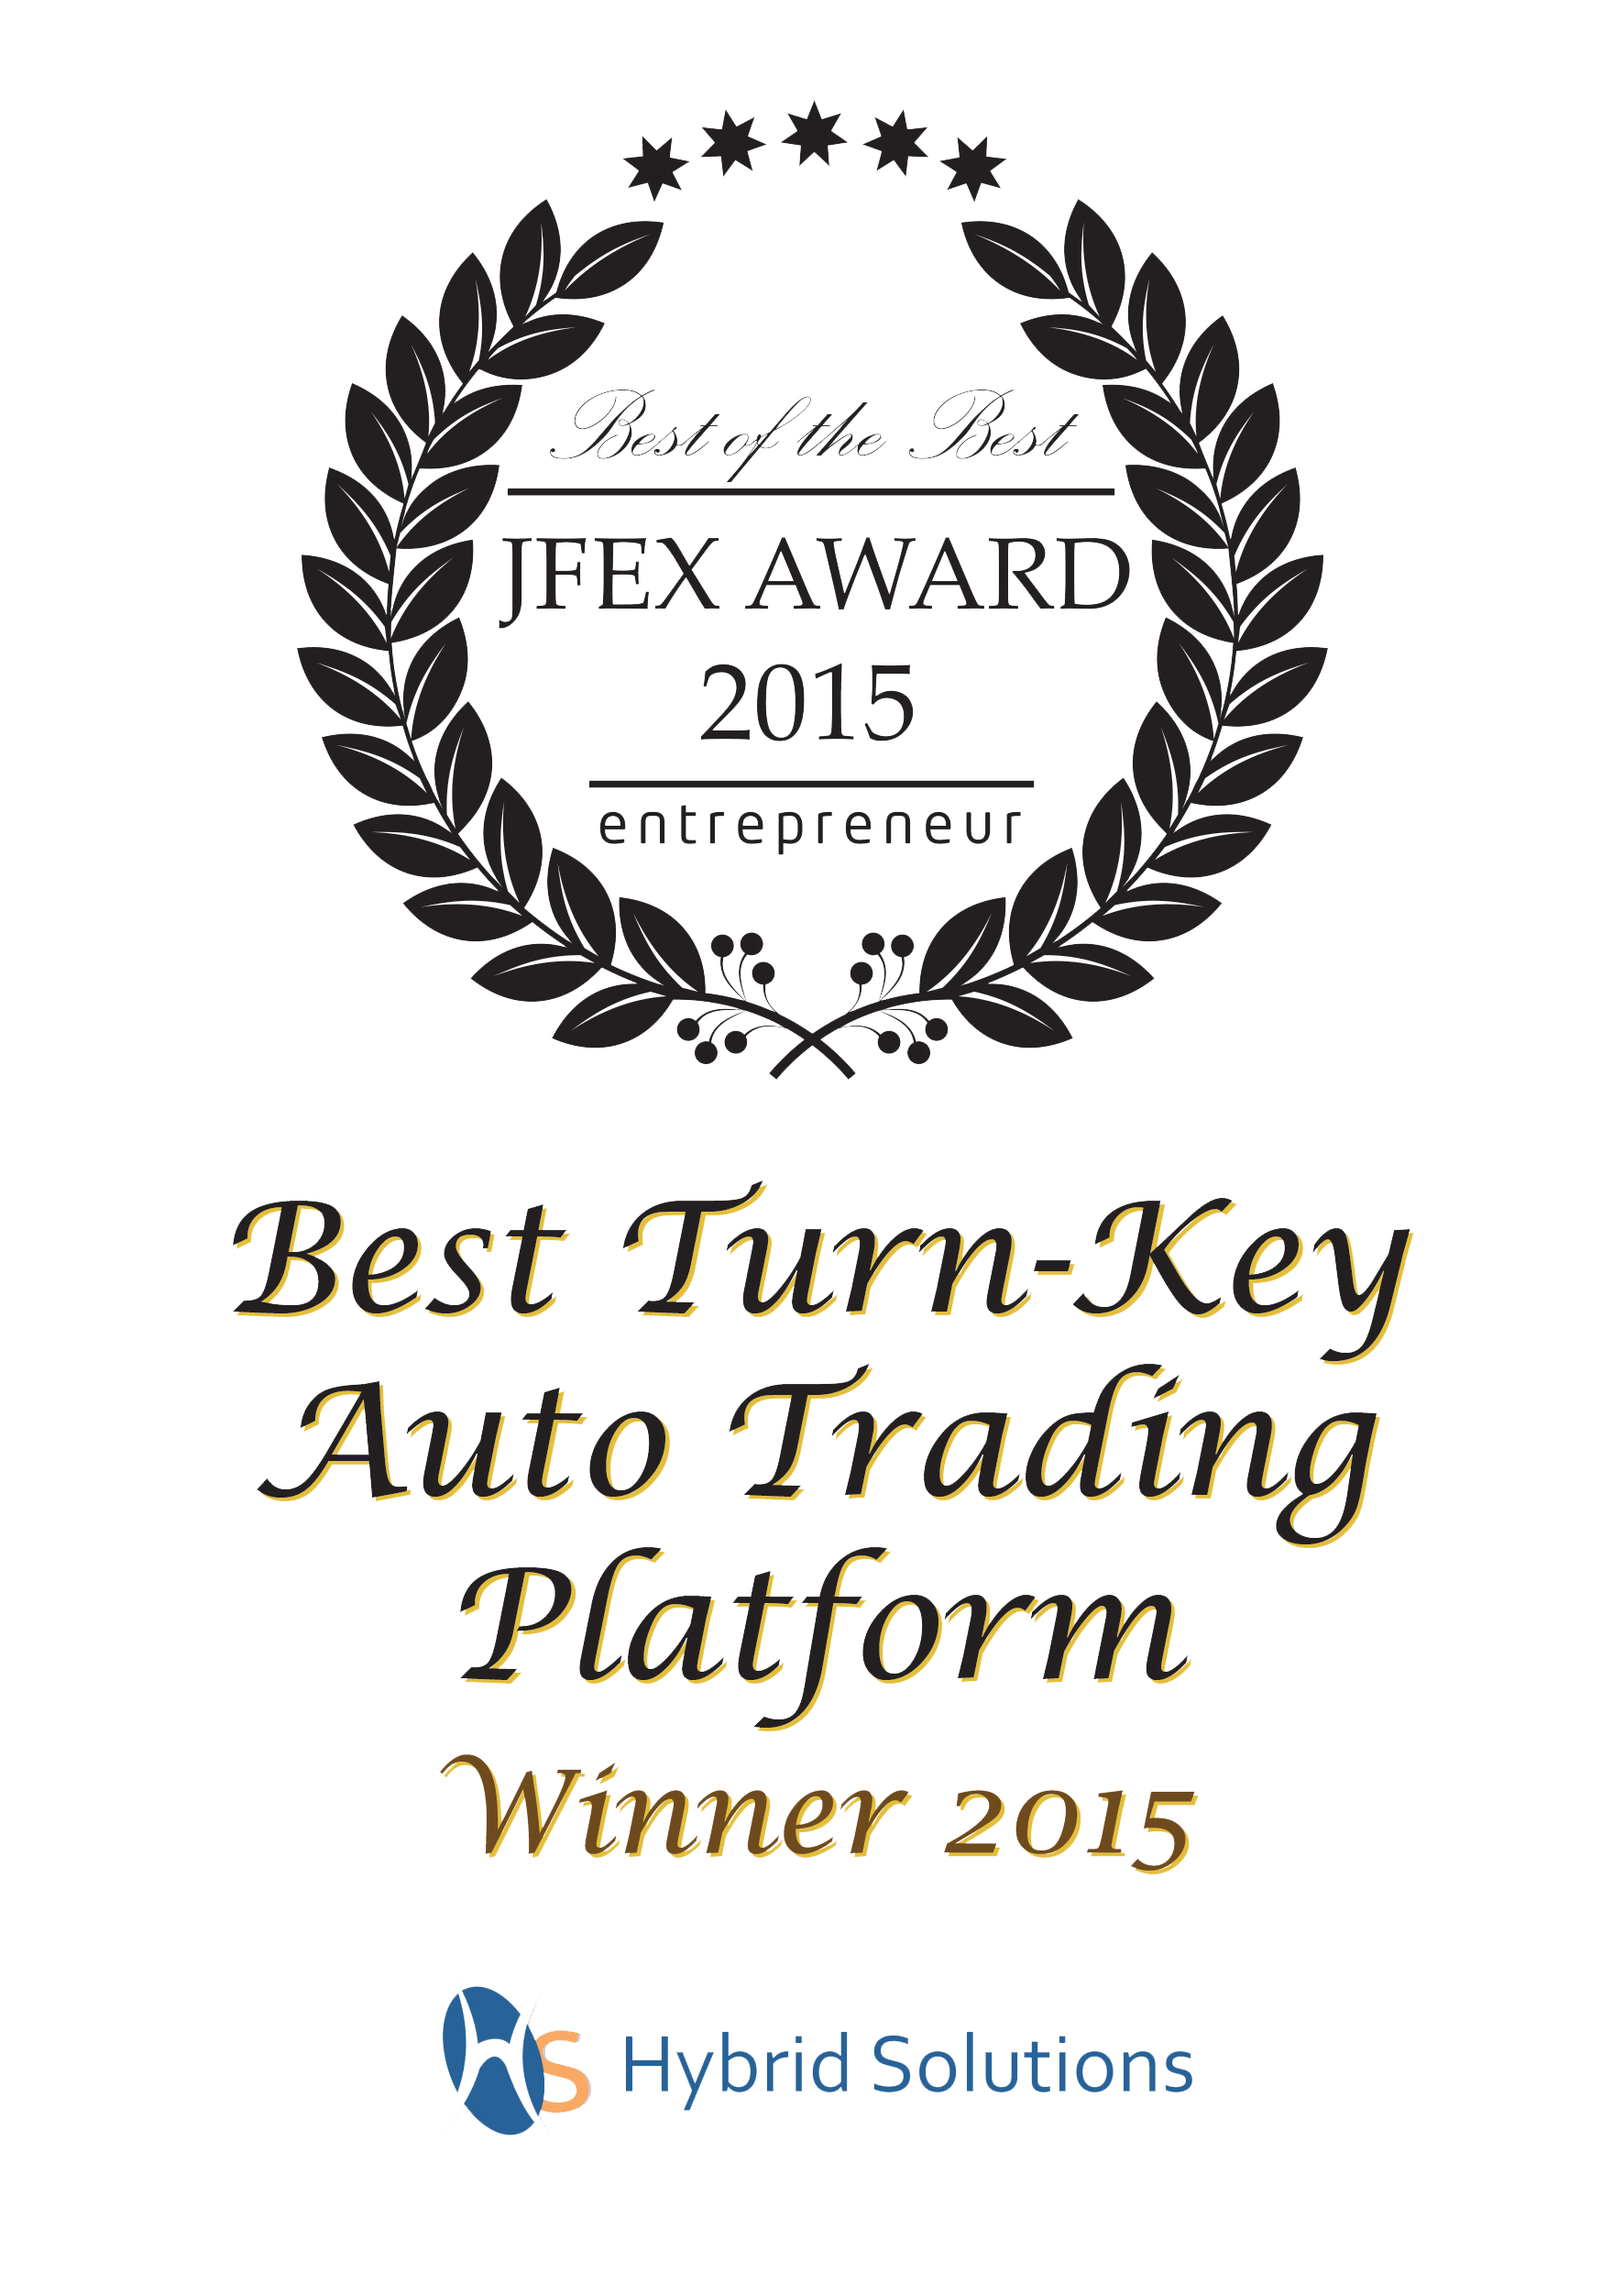 Best Turn-Key Auto Trading Platform Winner 2015